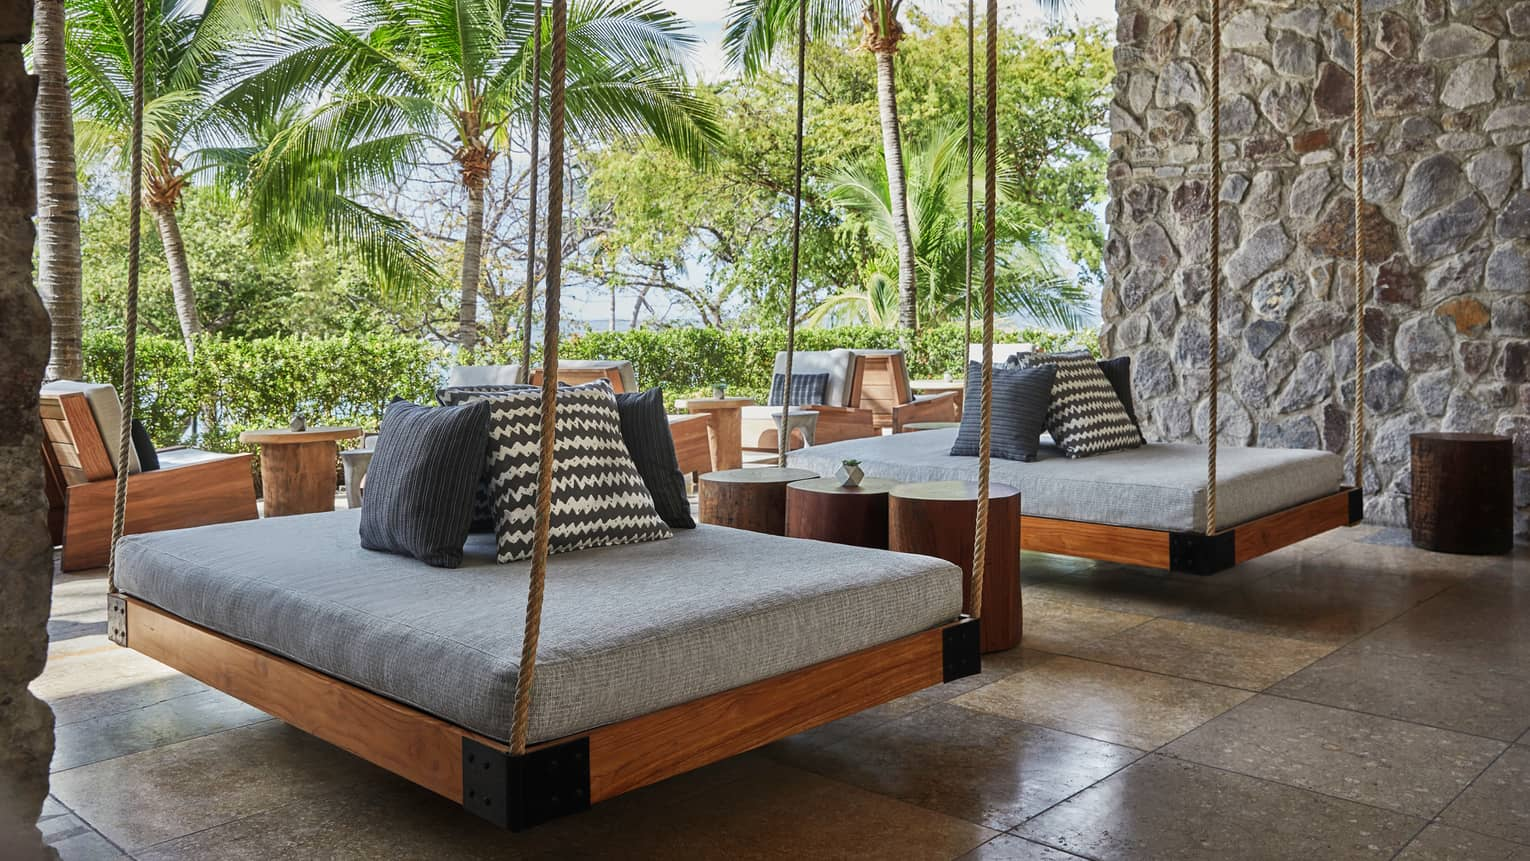 Two hanging patio beds held by ropes with thick grey cushions, accent pillows